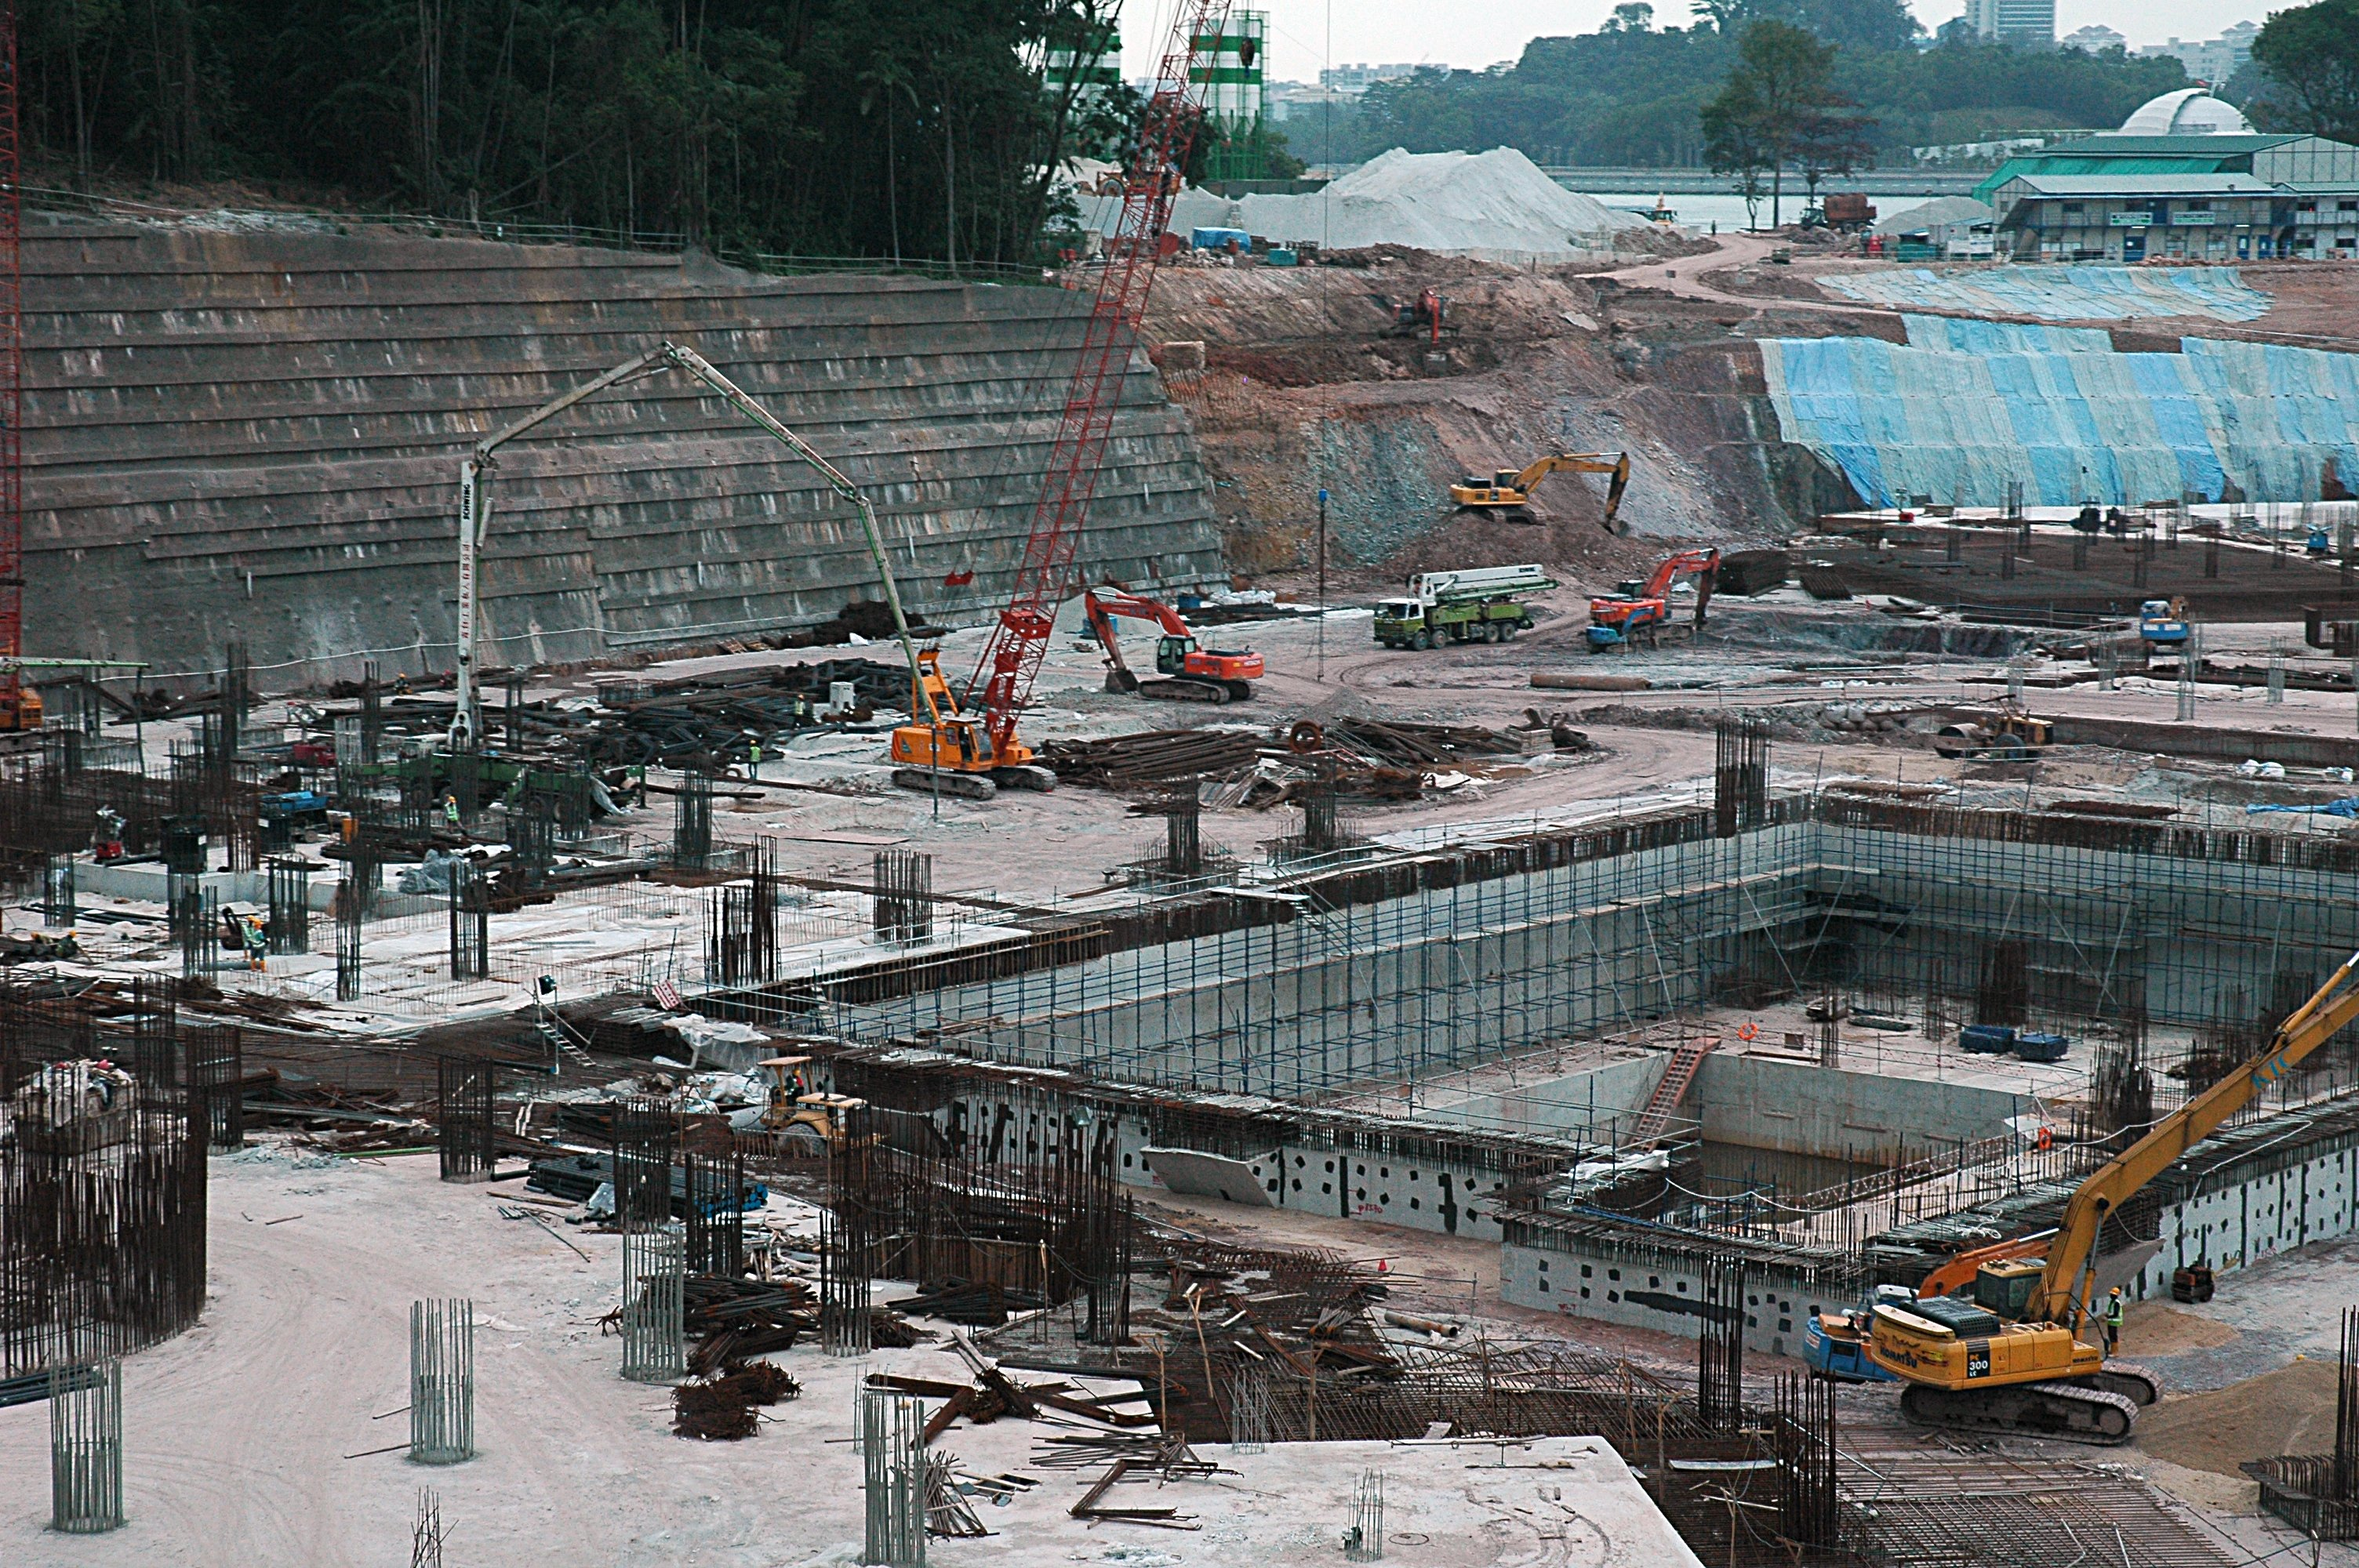 Constuction of singapura casino have stoped all-access gift card gambling